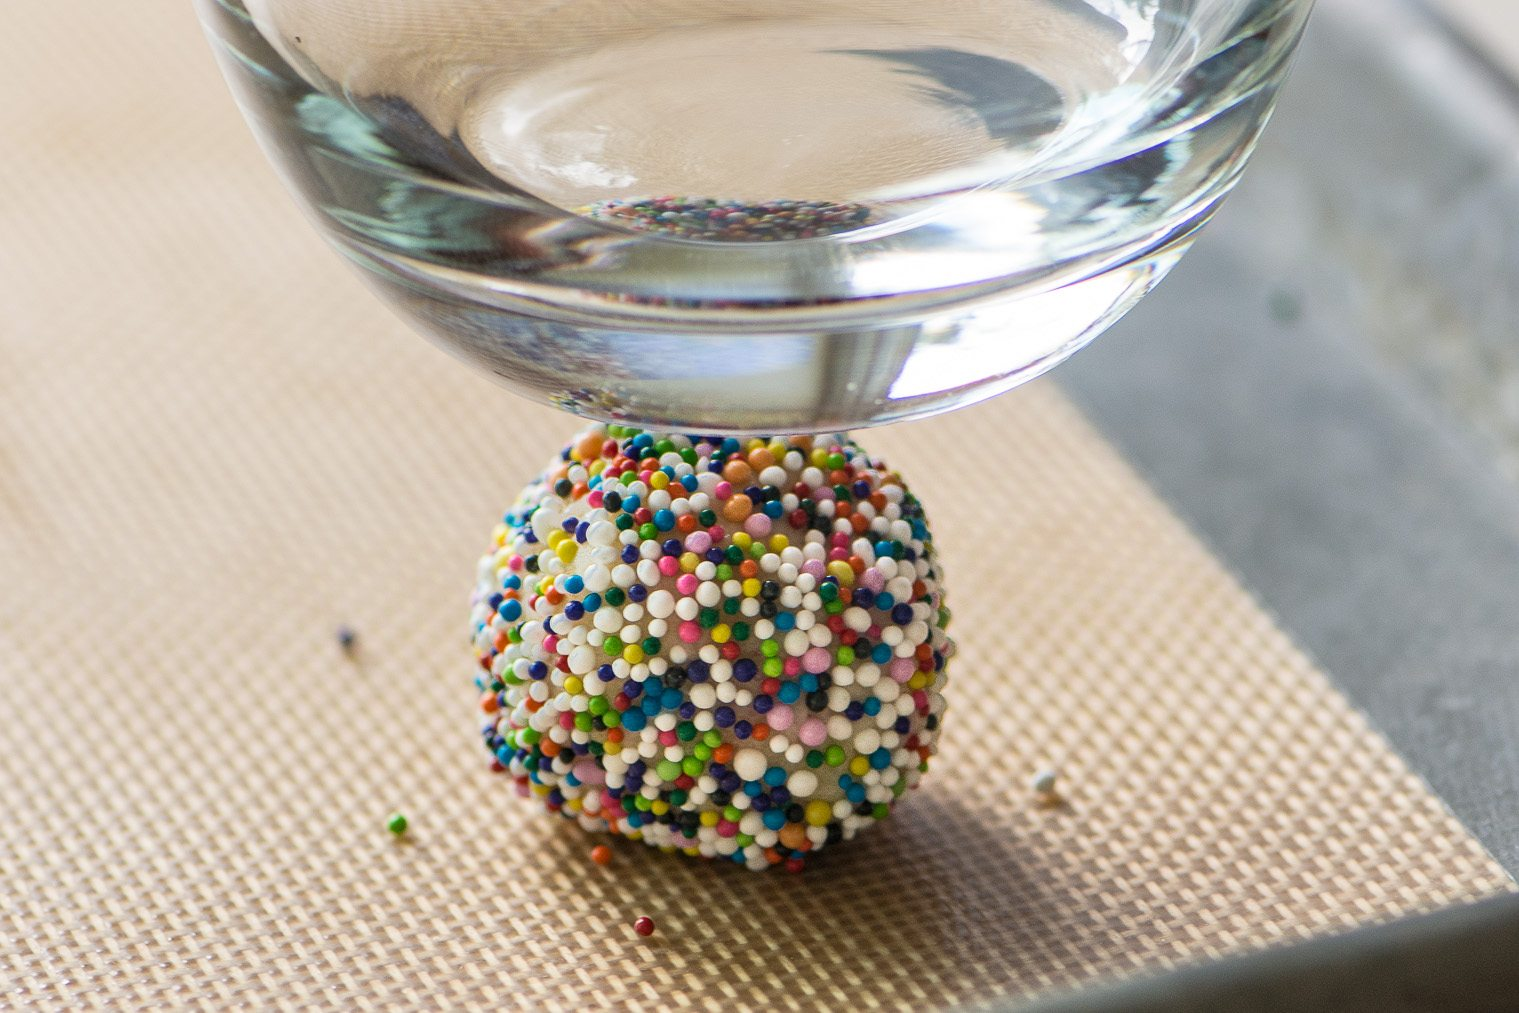 Flattening a Sprinkle Sugar Cookie with a glass, before baking